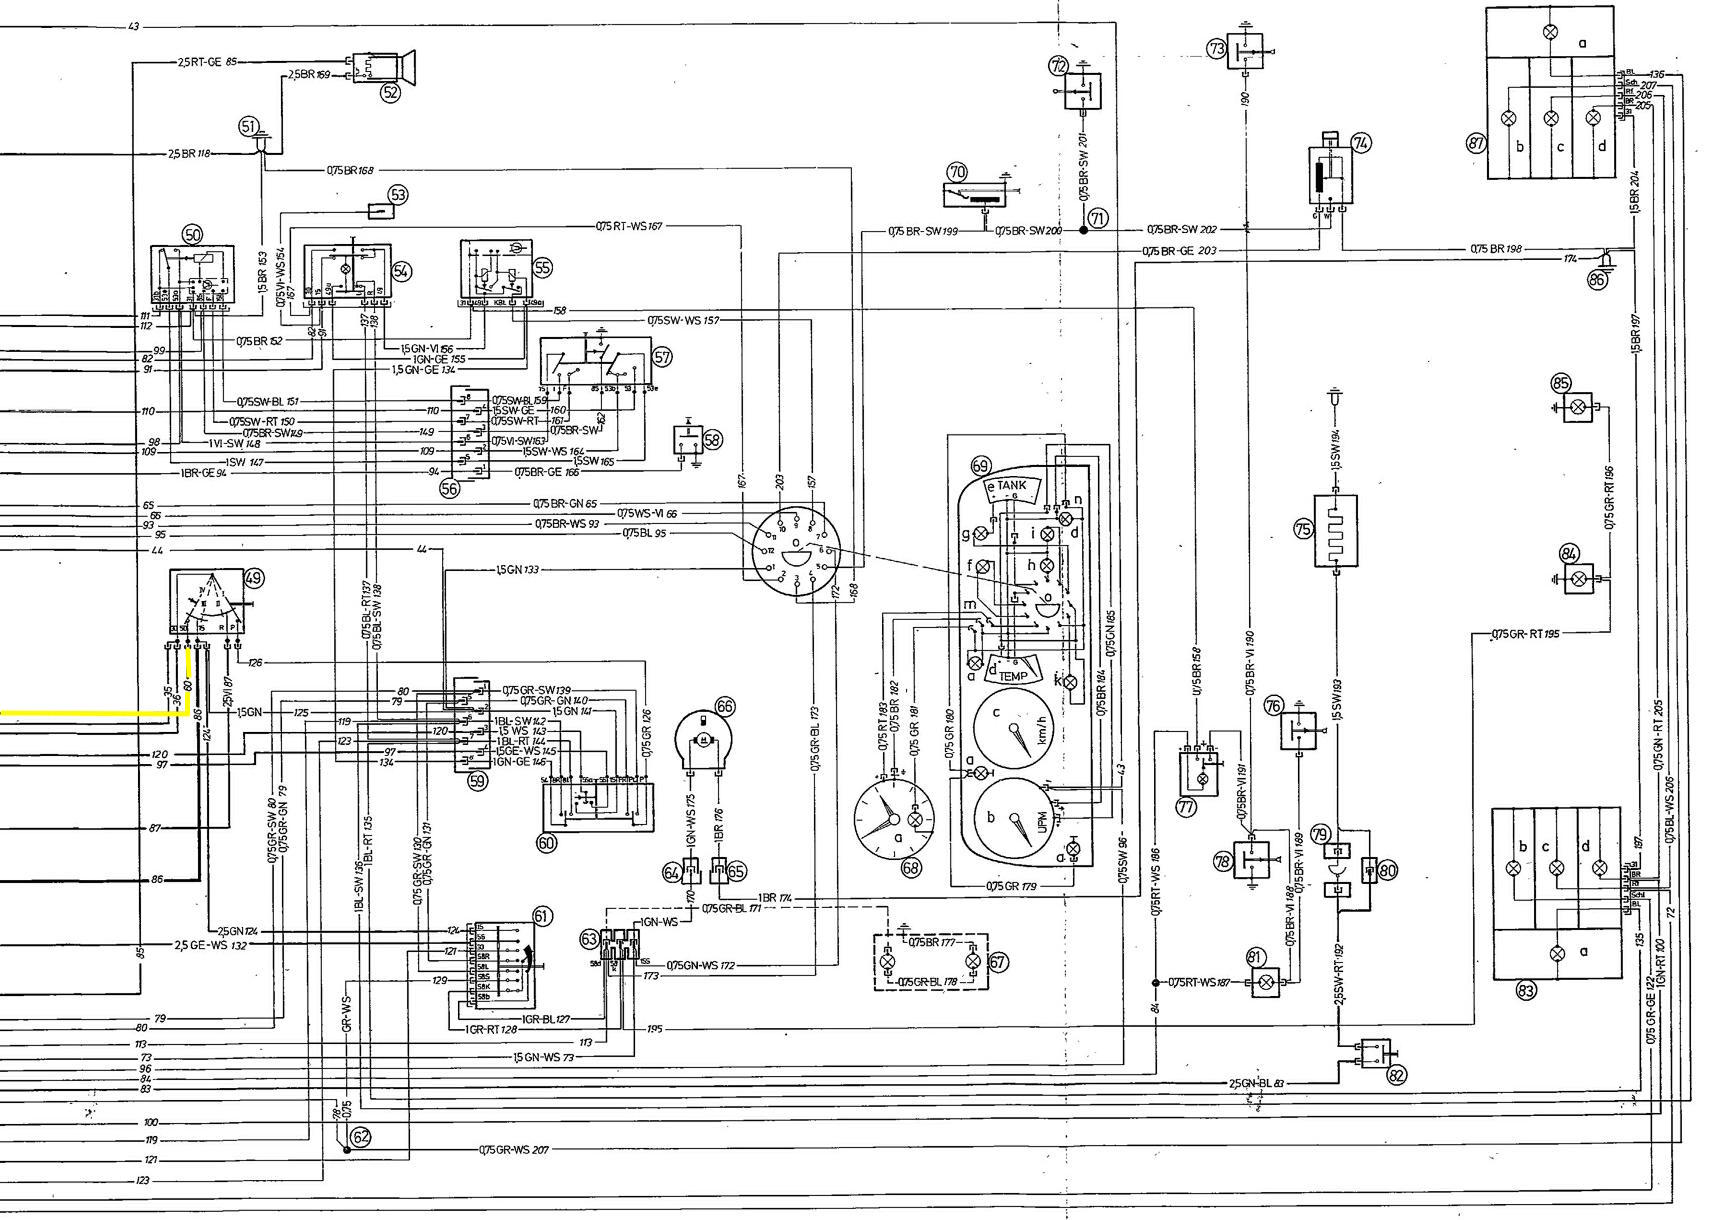 wiring diagram bmw r65ls is